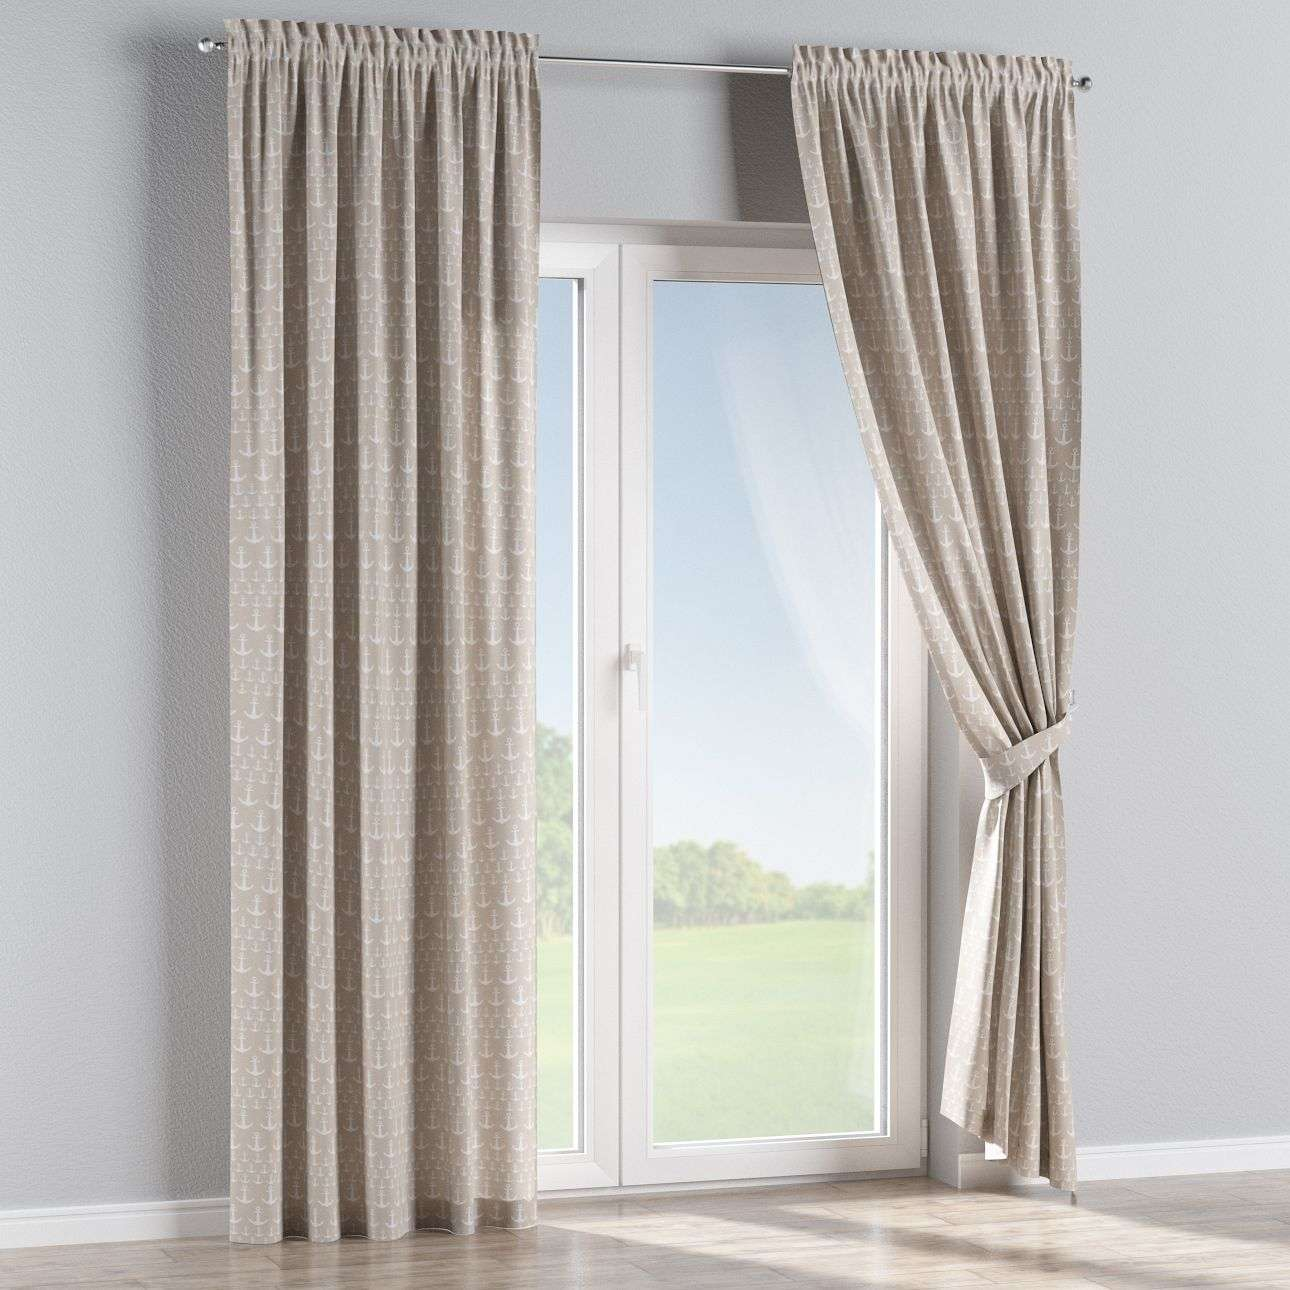 Slot and frill curtains in collection SALE, fabric: 140-63